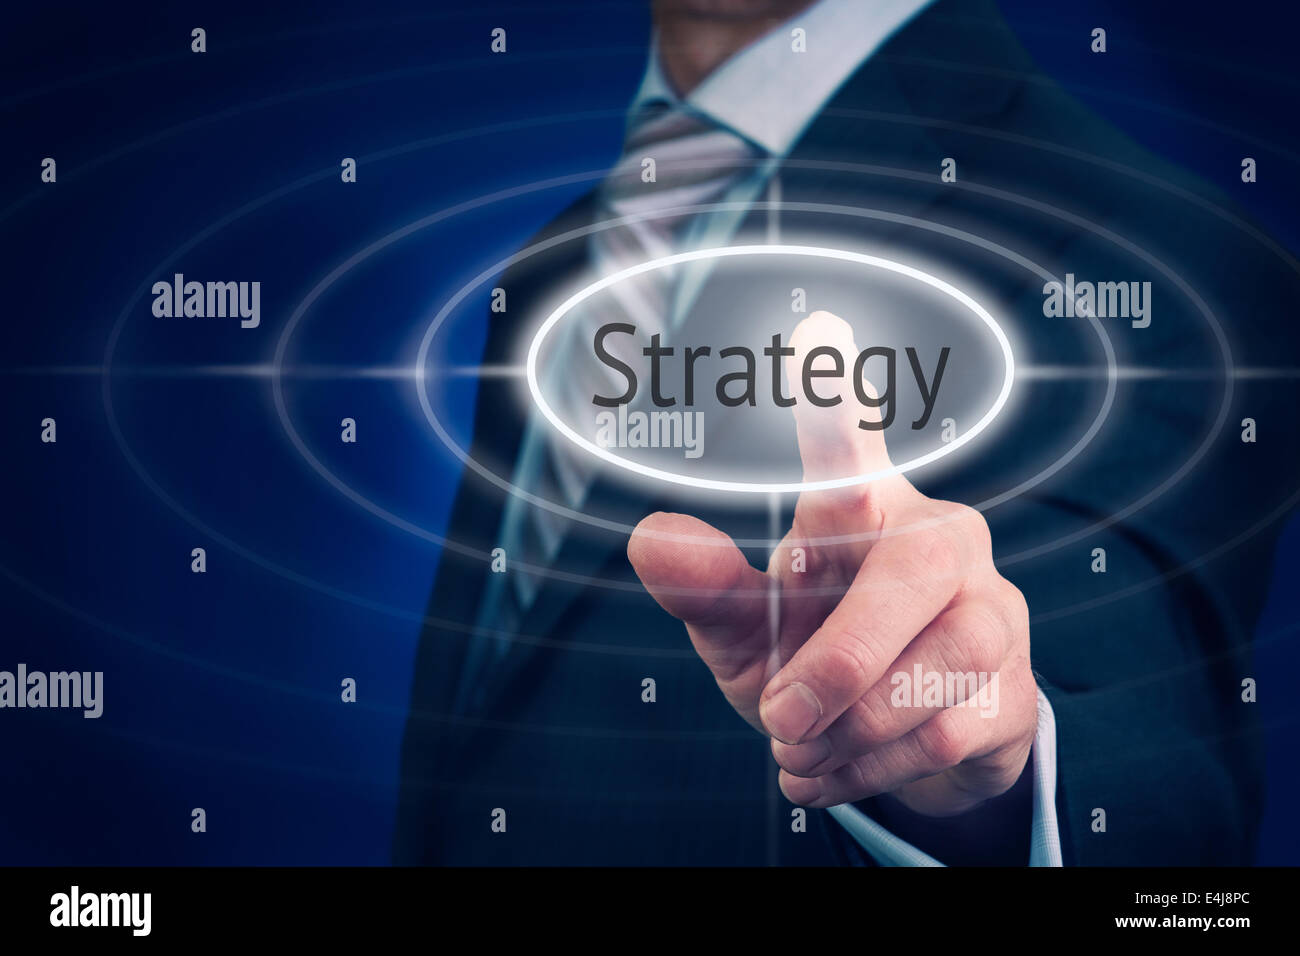 Businessman pressing a Strategy concept button. - Stock Image